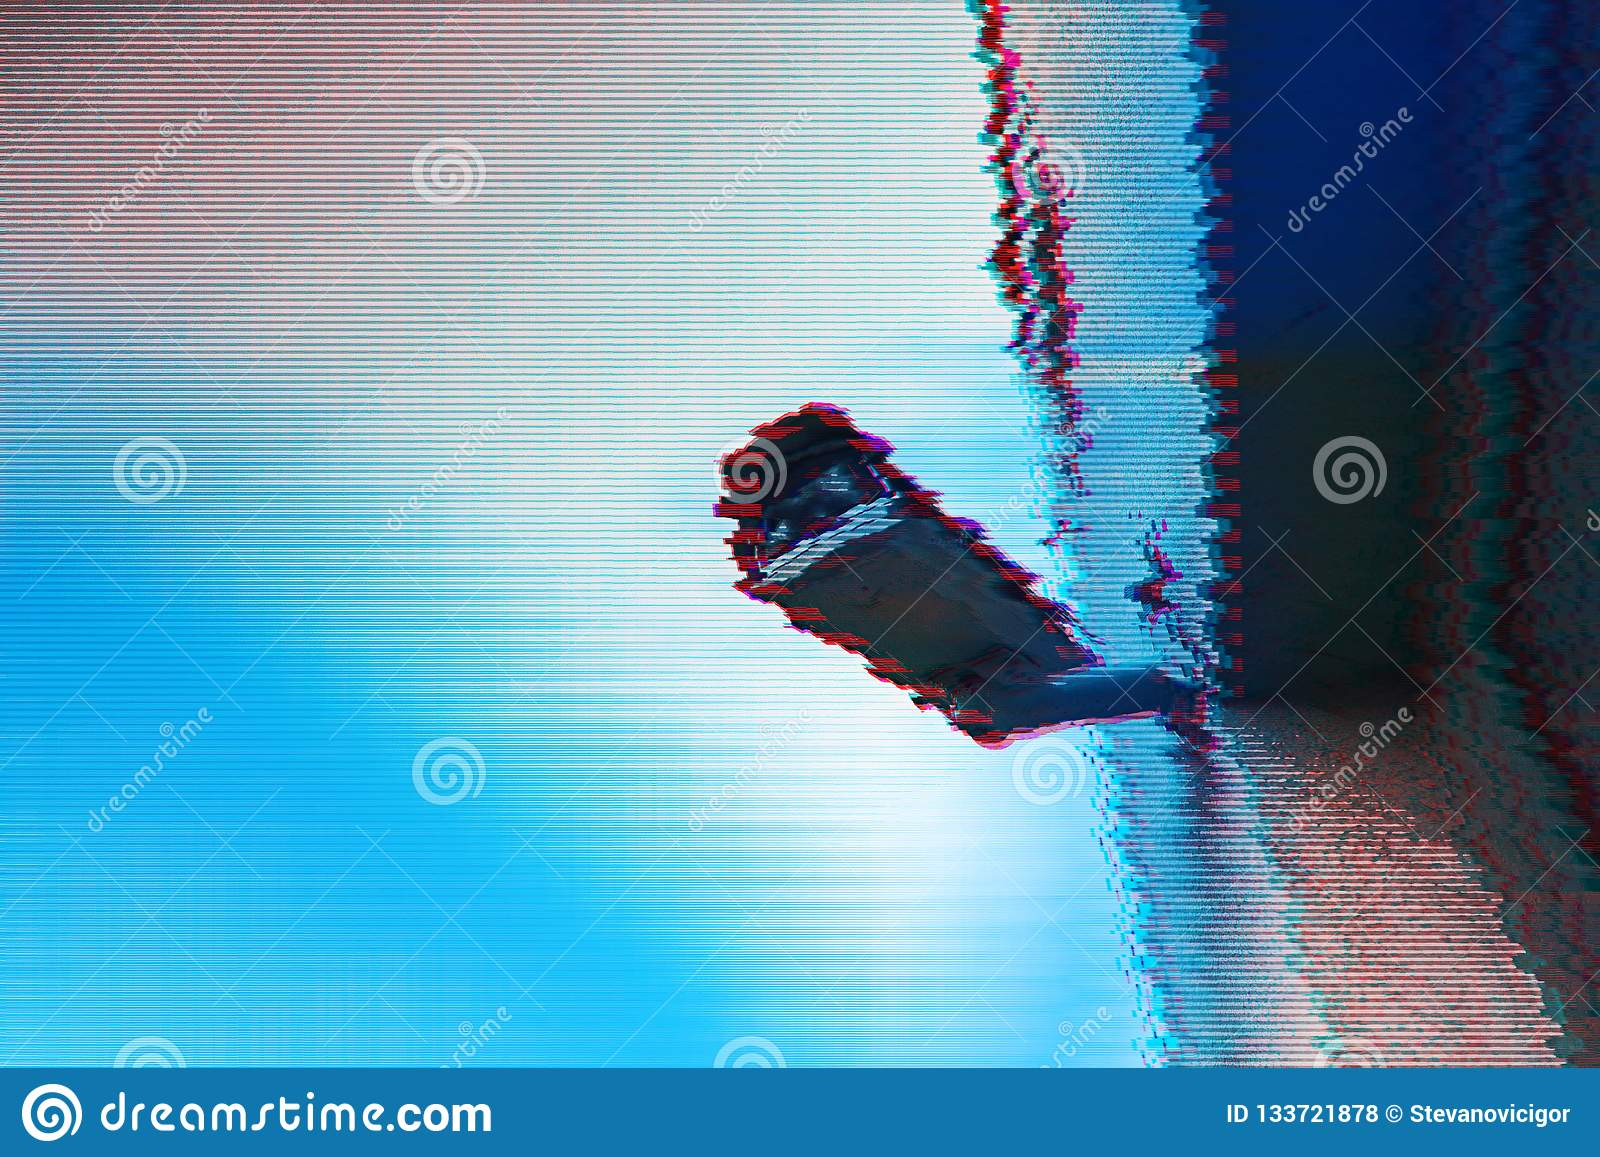 Surveillance Camera With Digital Glitch Effect Stock Photo - Image